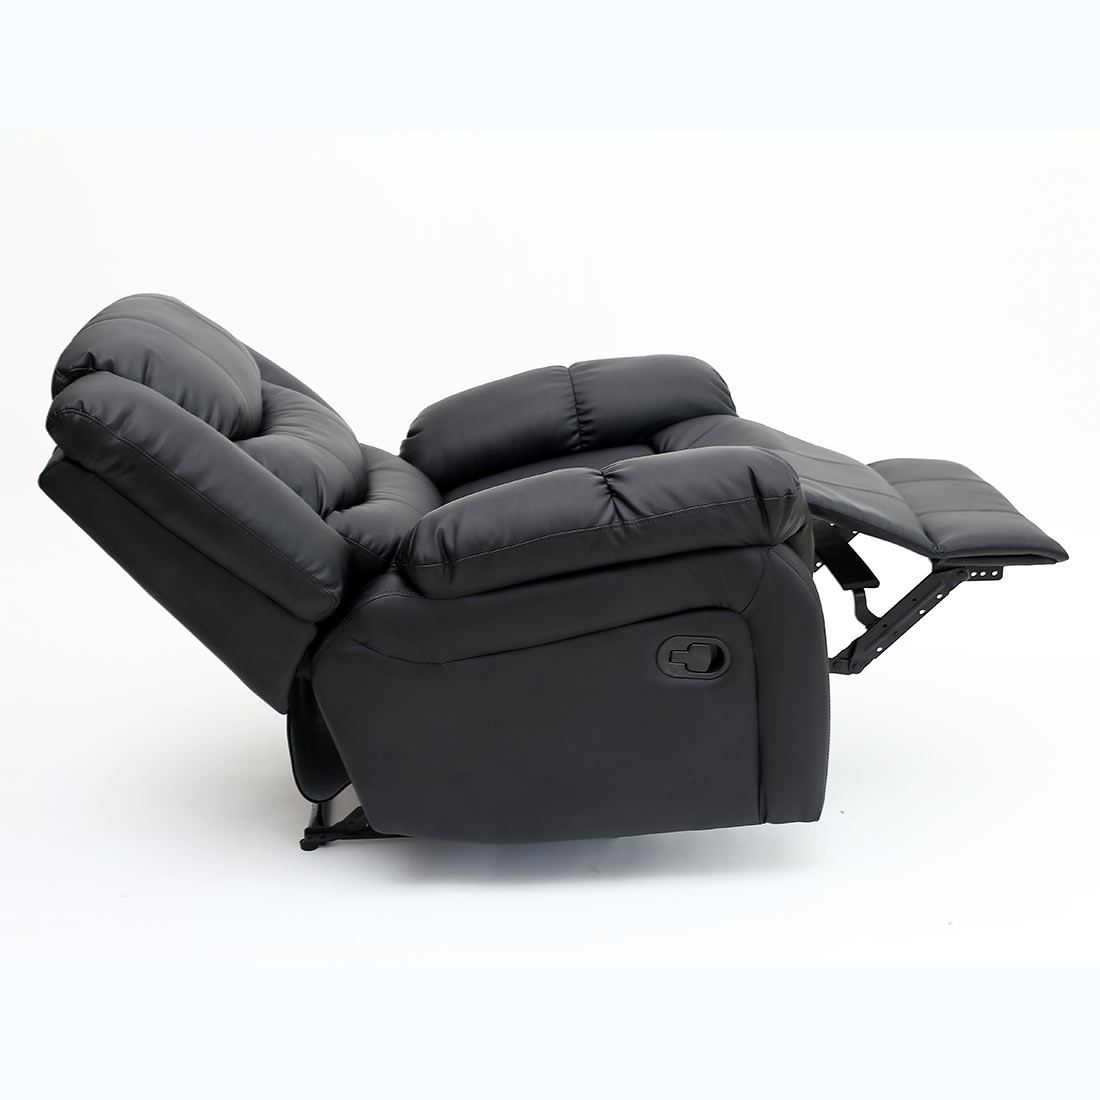 recliner gaming chair covers couch seattle leather armchair sofa home lounge